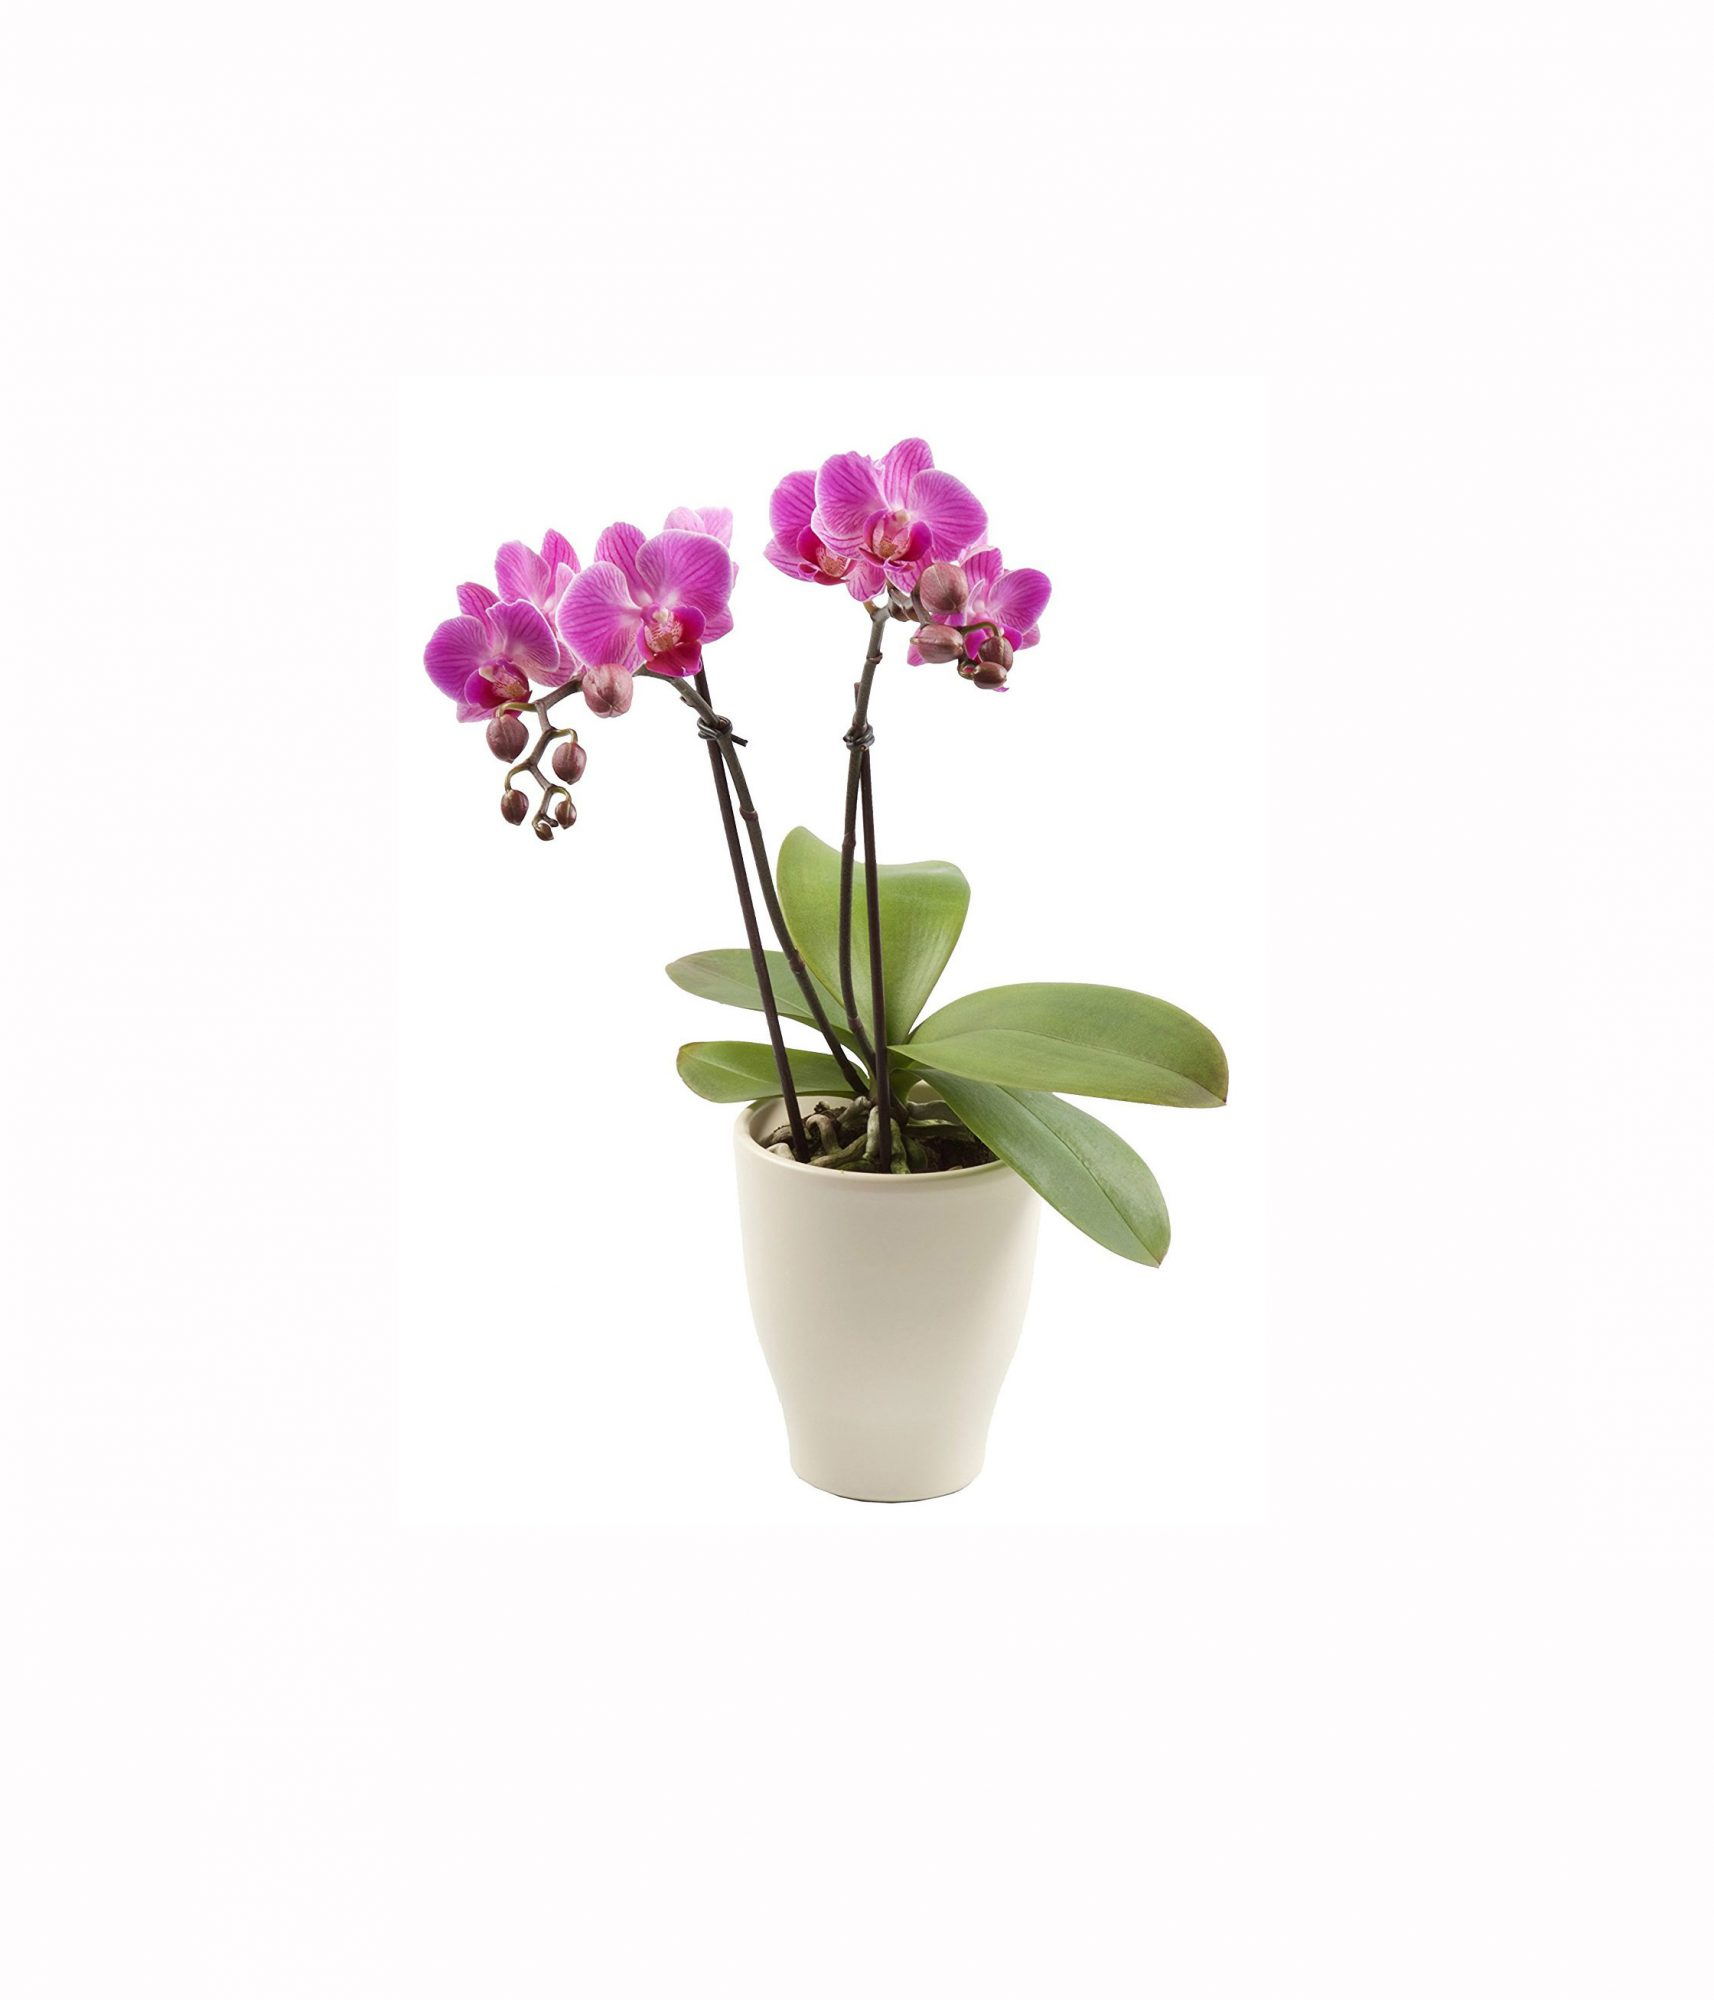 7 Plants You Can Buy on Amazon Right Now